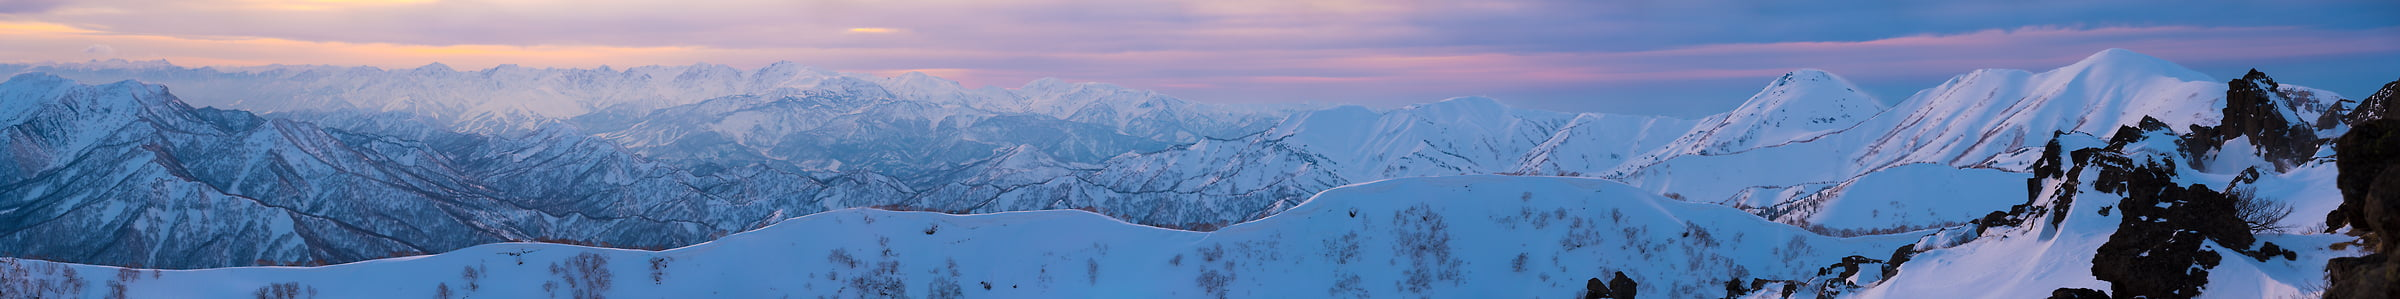 Thumbnail from 253 megapixels! A very high resolution, large-format VAST photo print of mountains in Myoko Kogen Ski Resort, Japan; fine art landscape photo created by Scott Rinckenberger